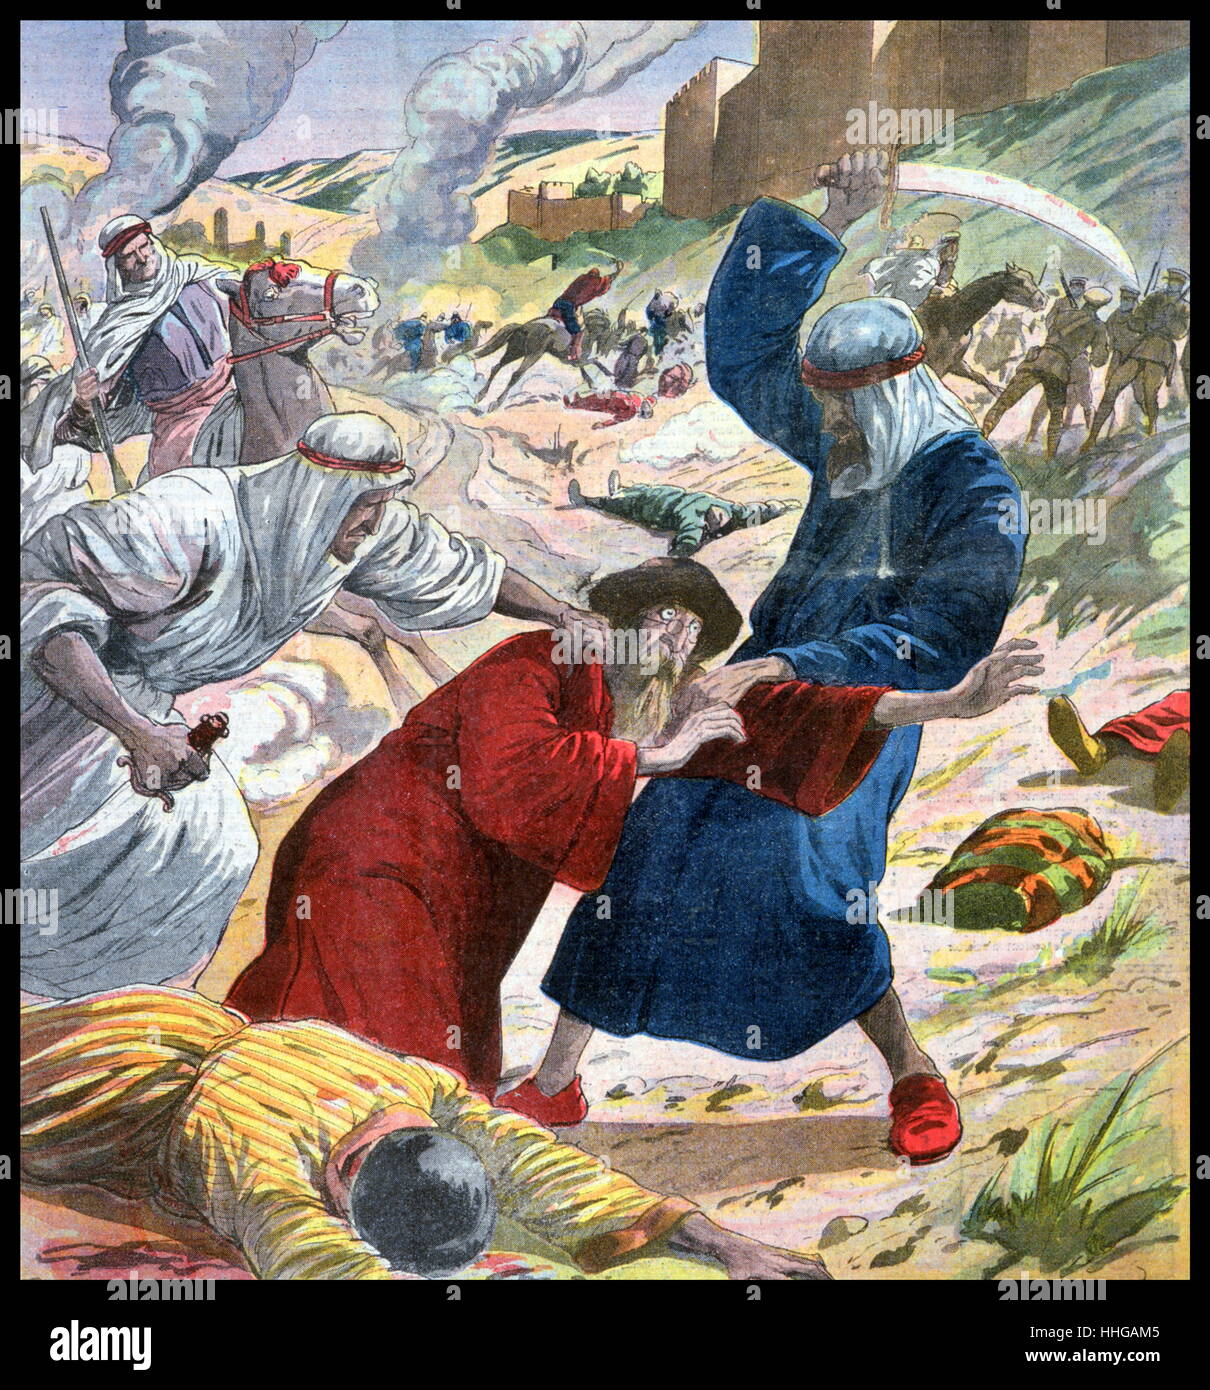 French magazine illustration, showing Arabs attacking Jews in the city of Jerusalem during riots in Palestine in - Stock Image